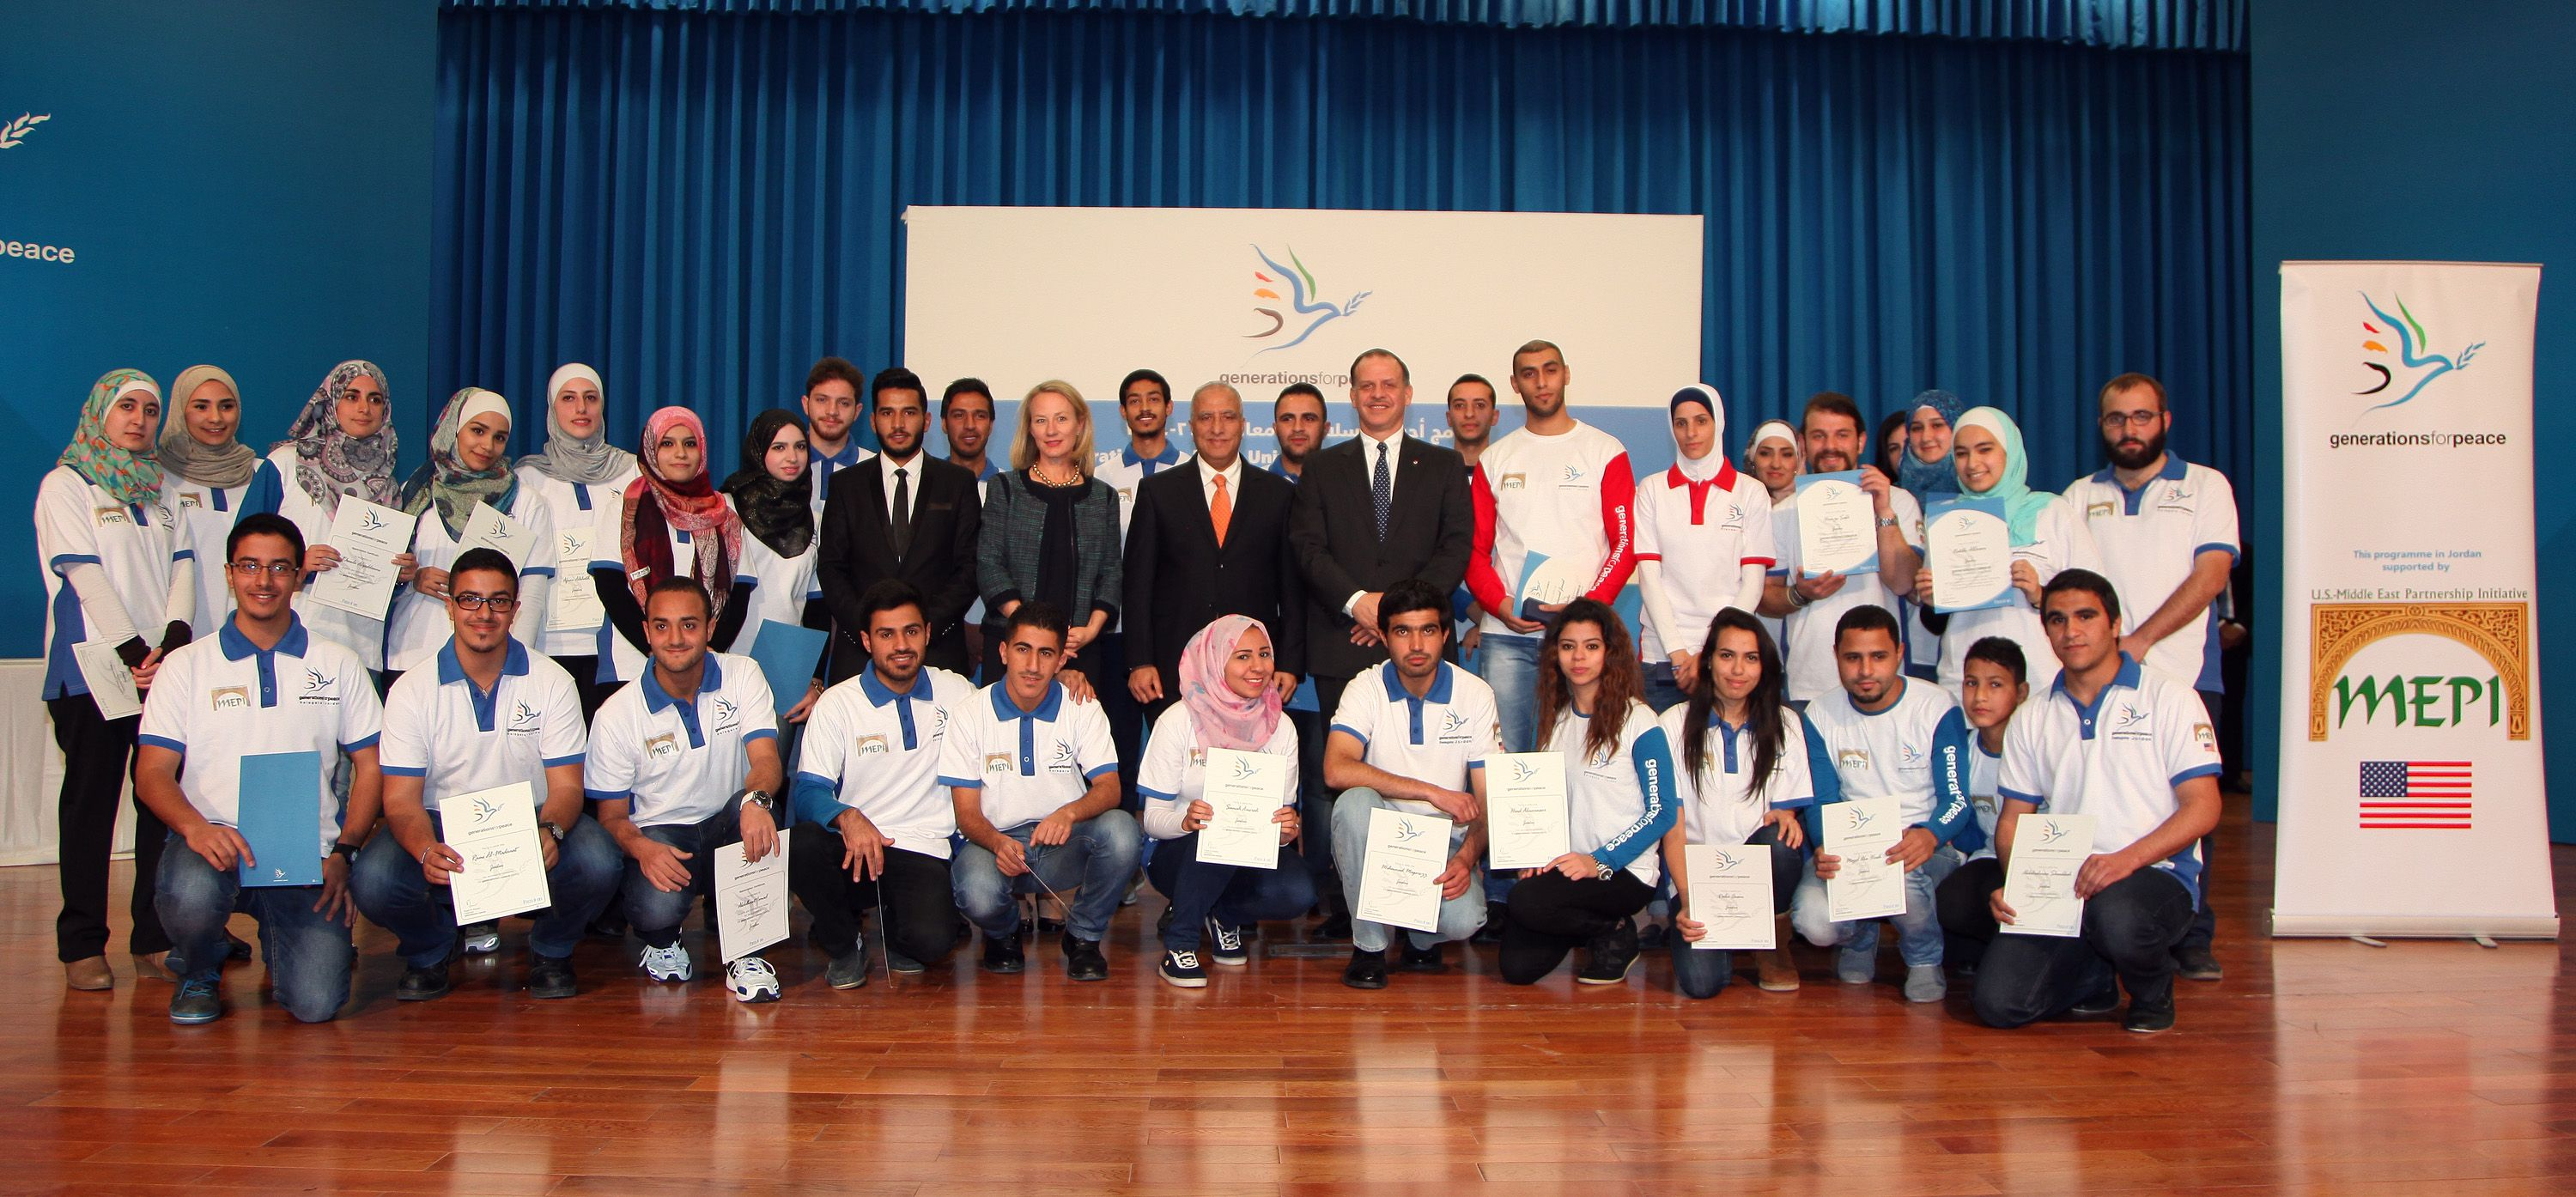 Group photo at the ceremony for the University of Jordan's Generations For Peace Club